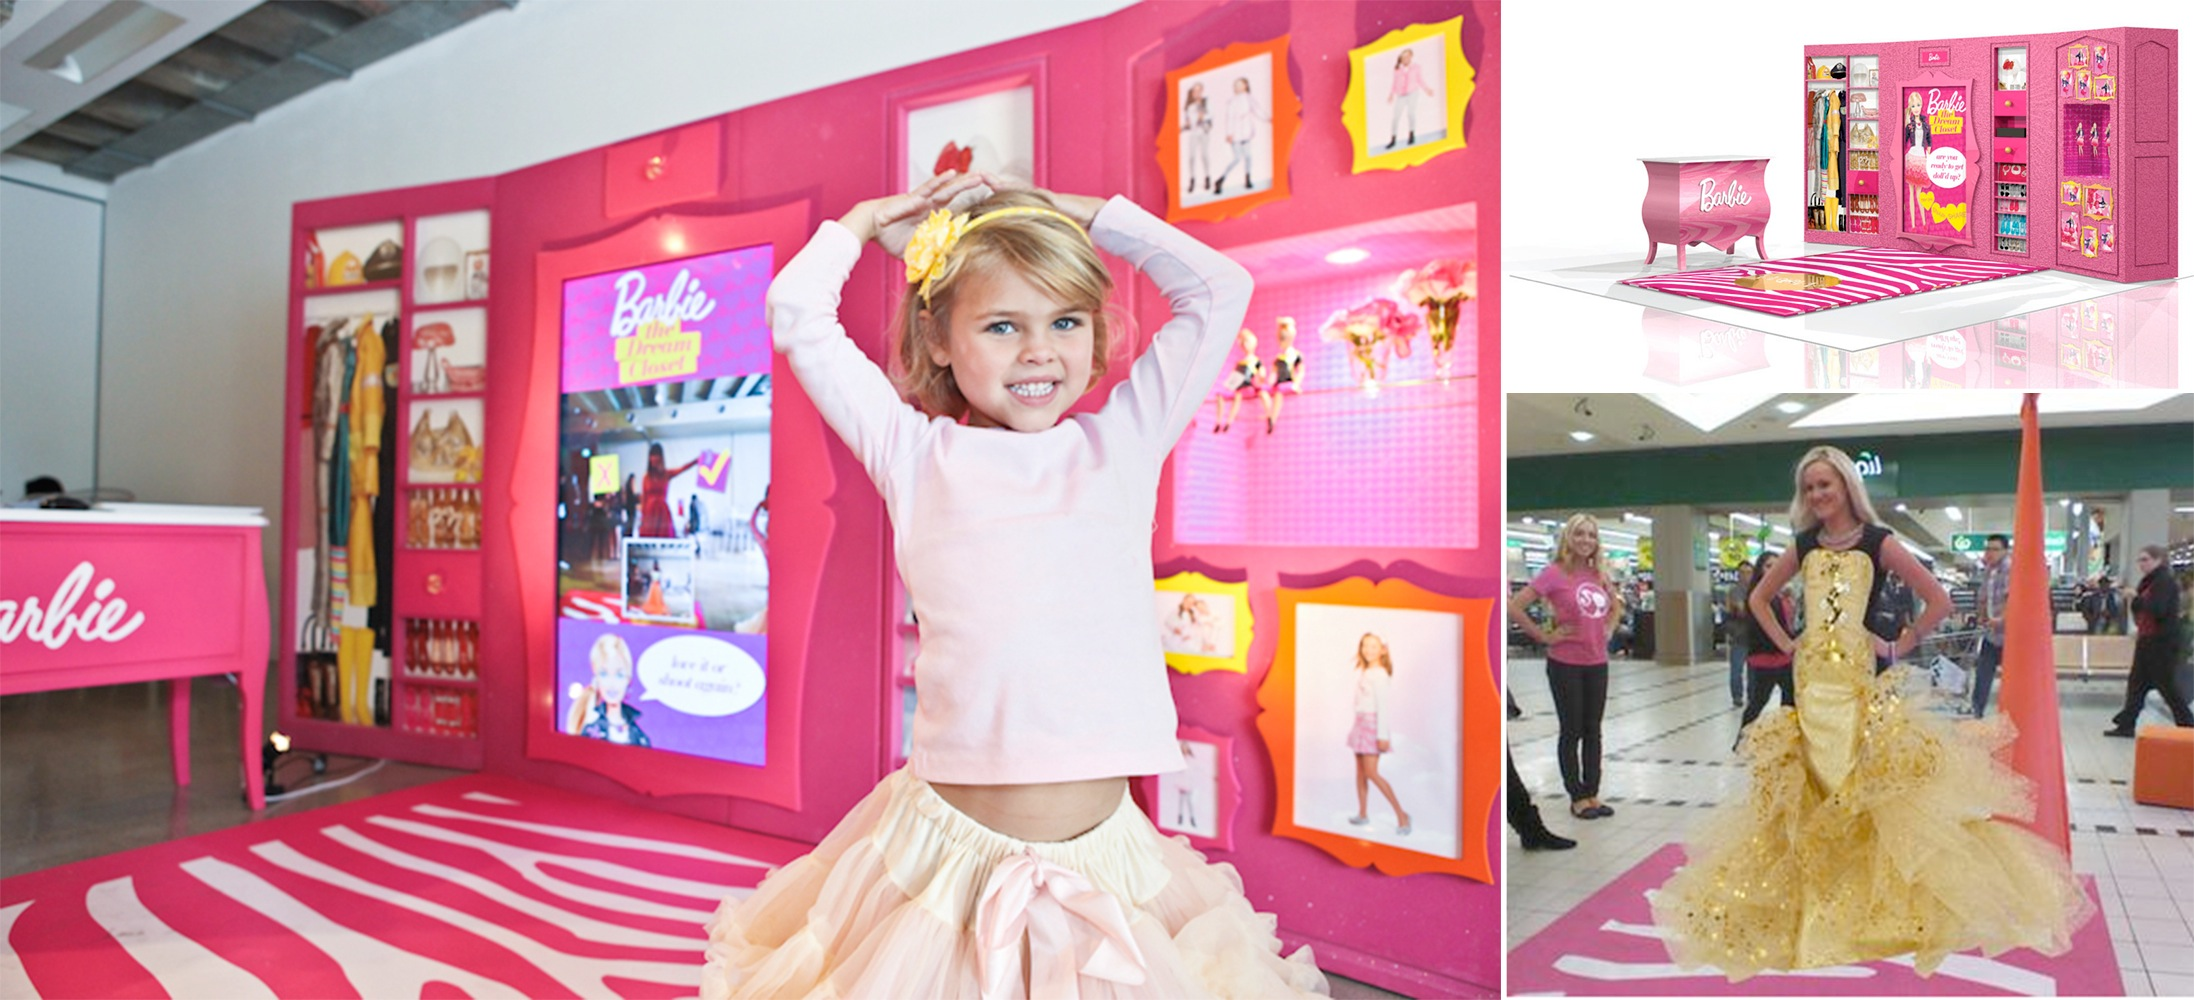 Apr 2012 - Working with Gun Communications, we launch Barbie's Dream Closet AR Experience for Mattel Toys. It's a hit!